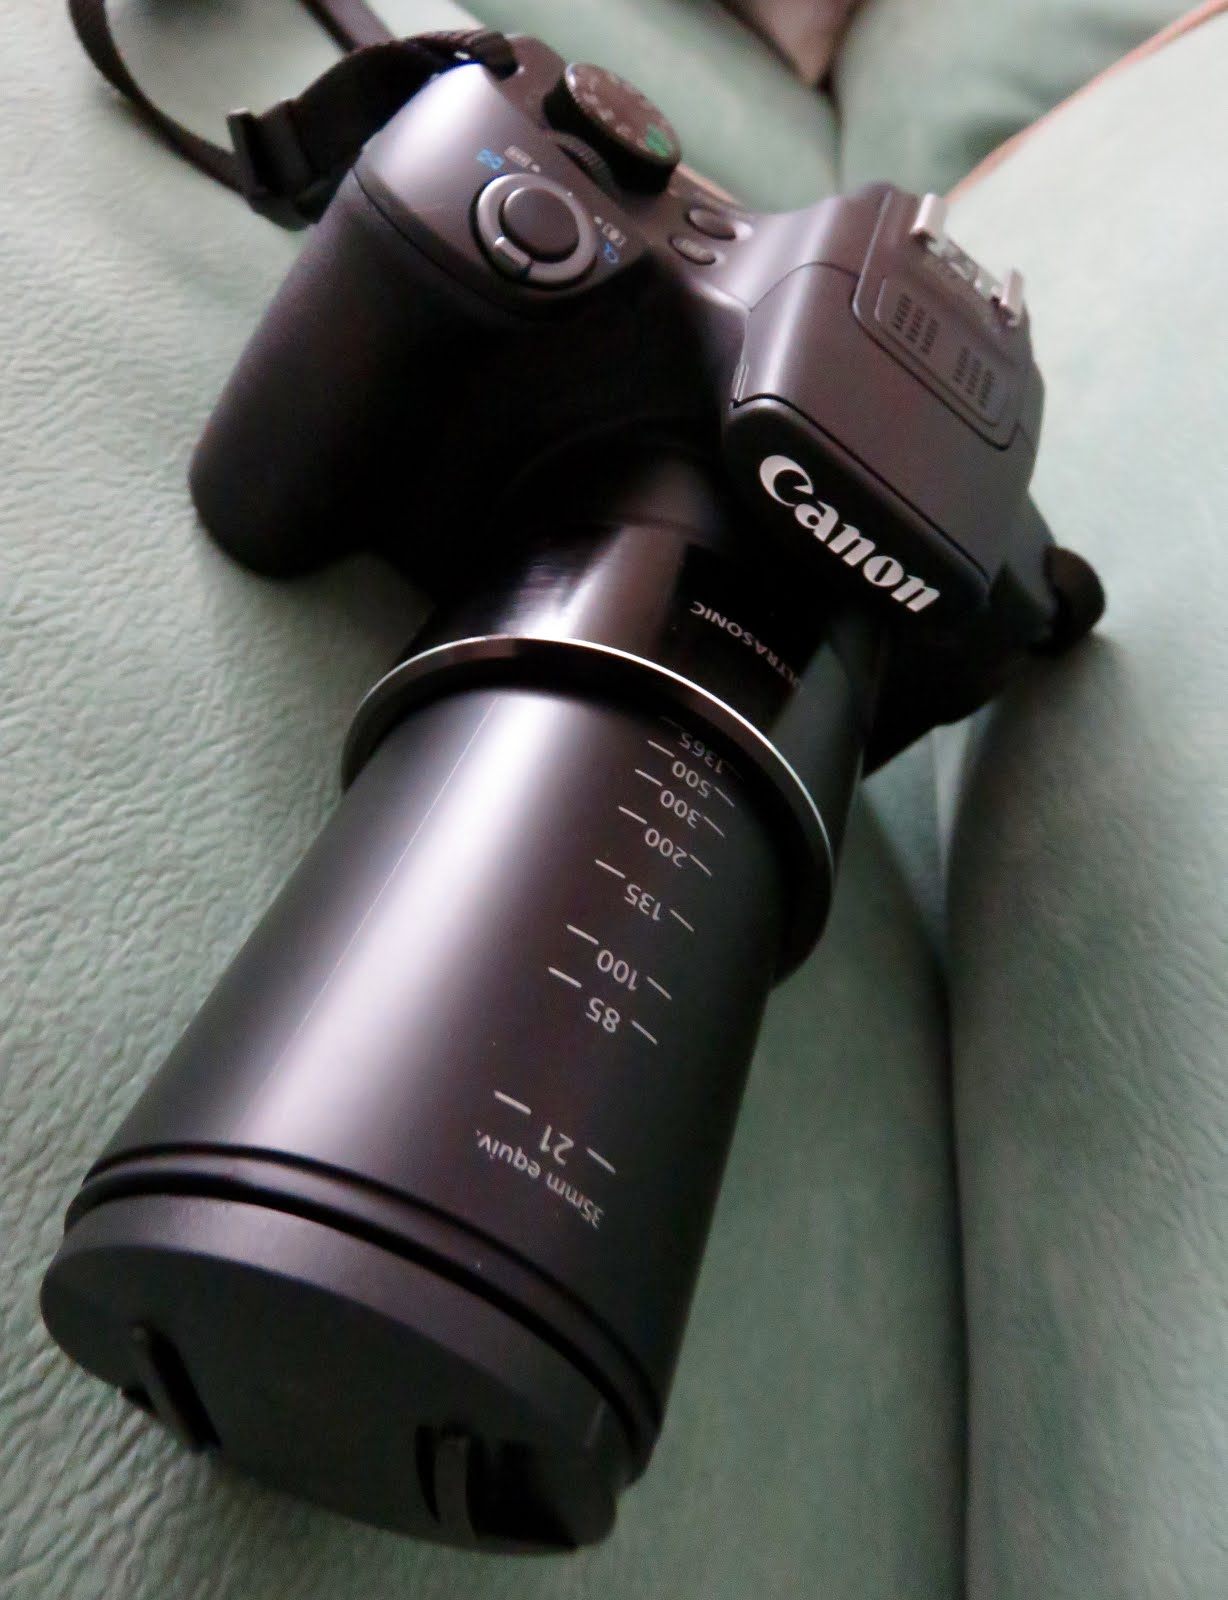 My Camera